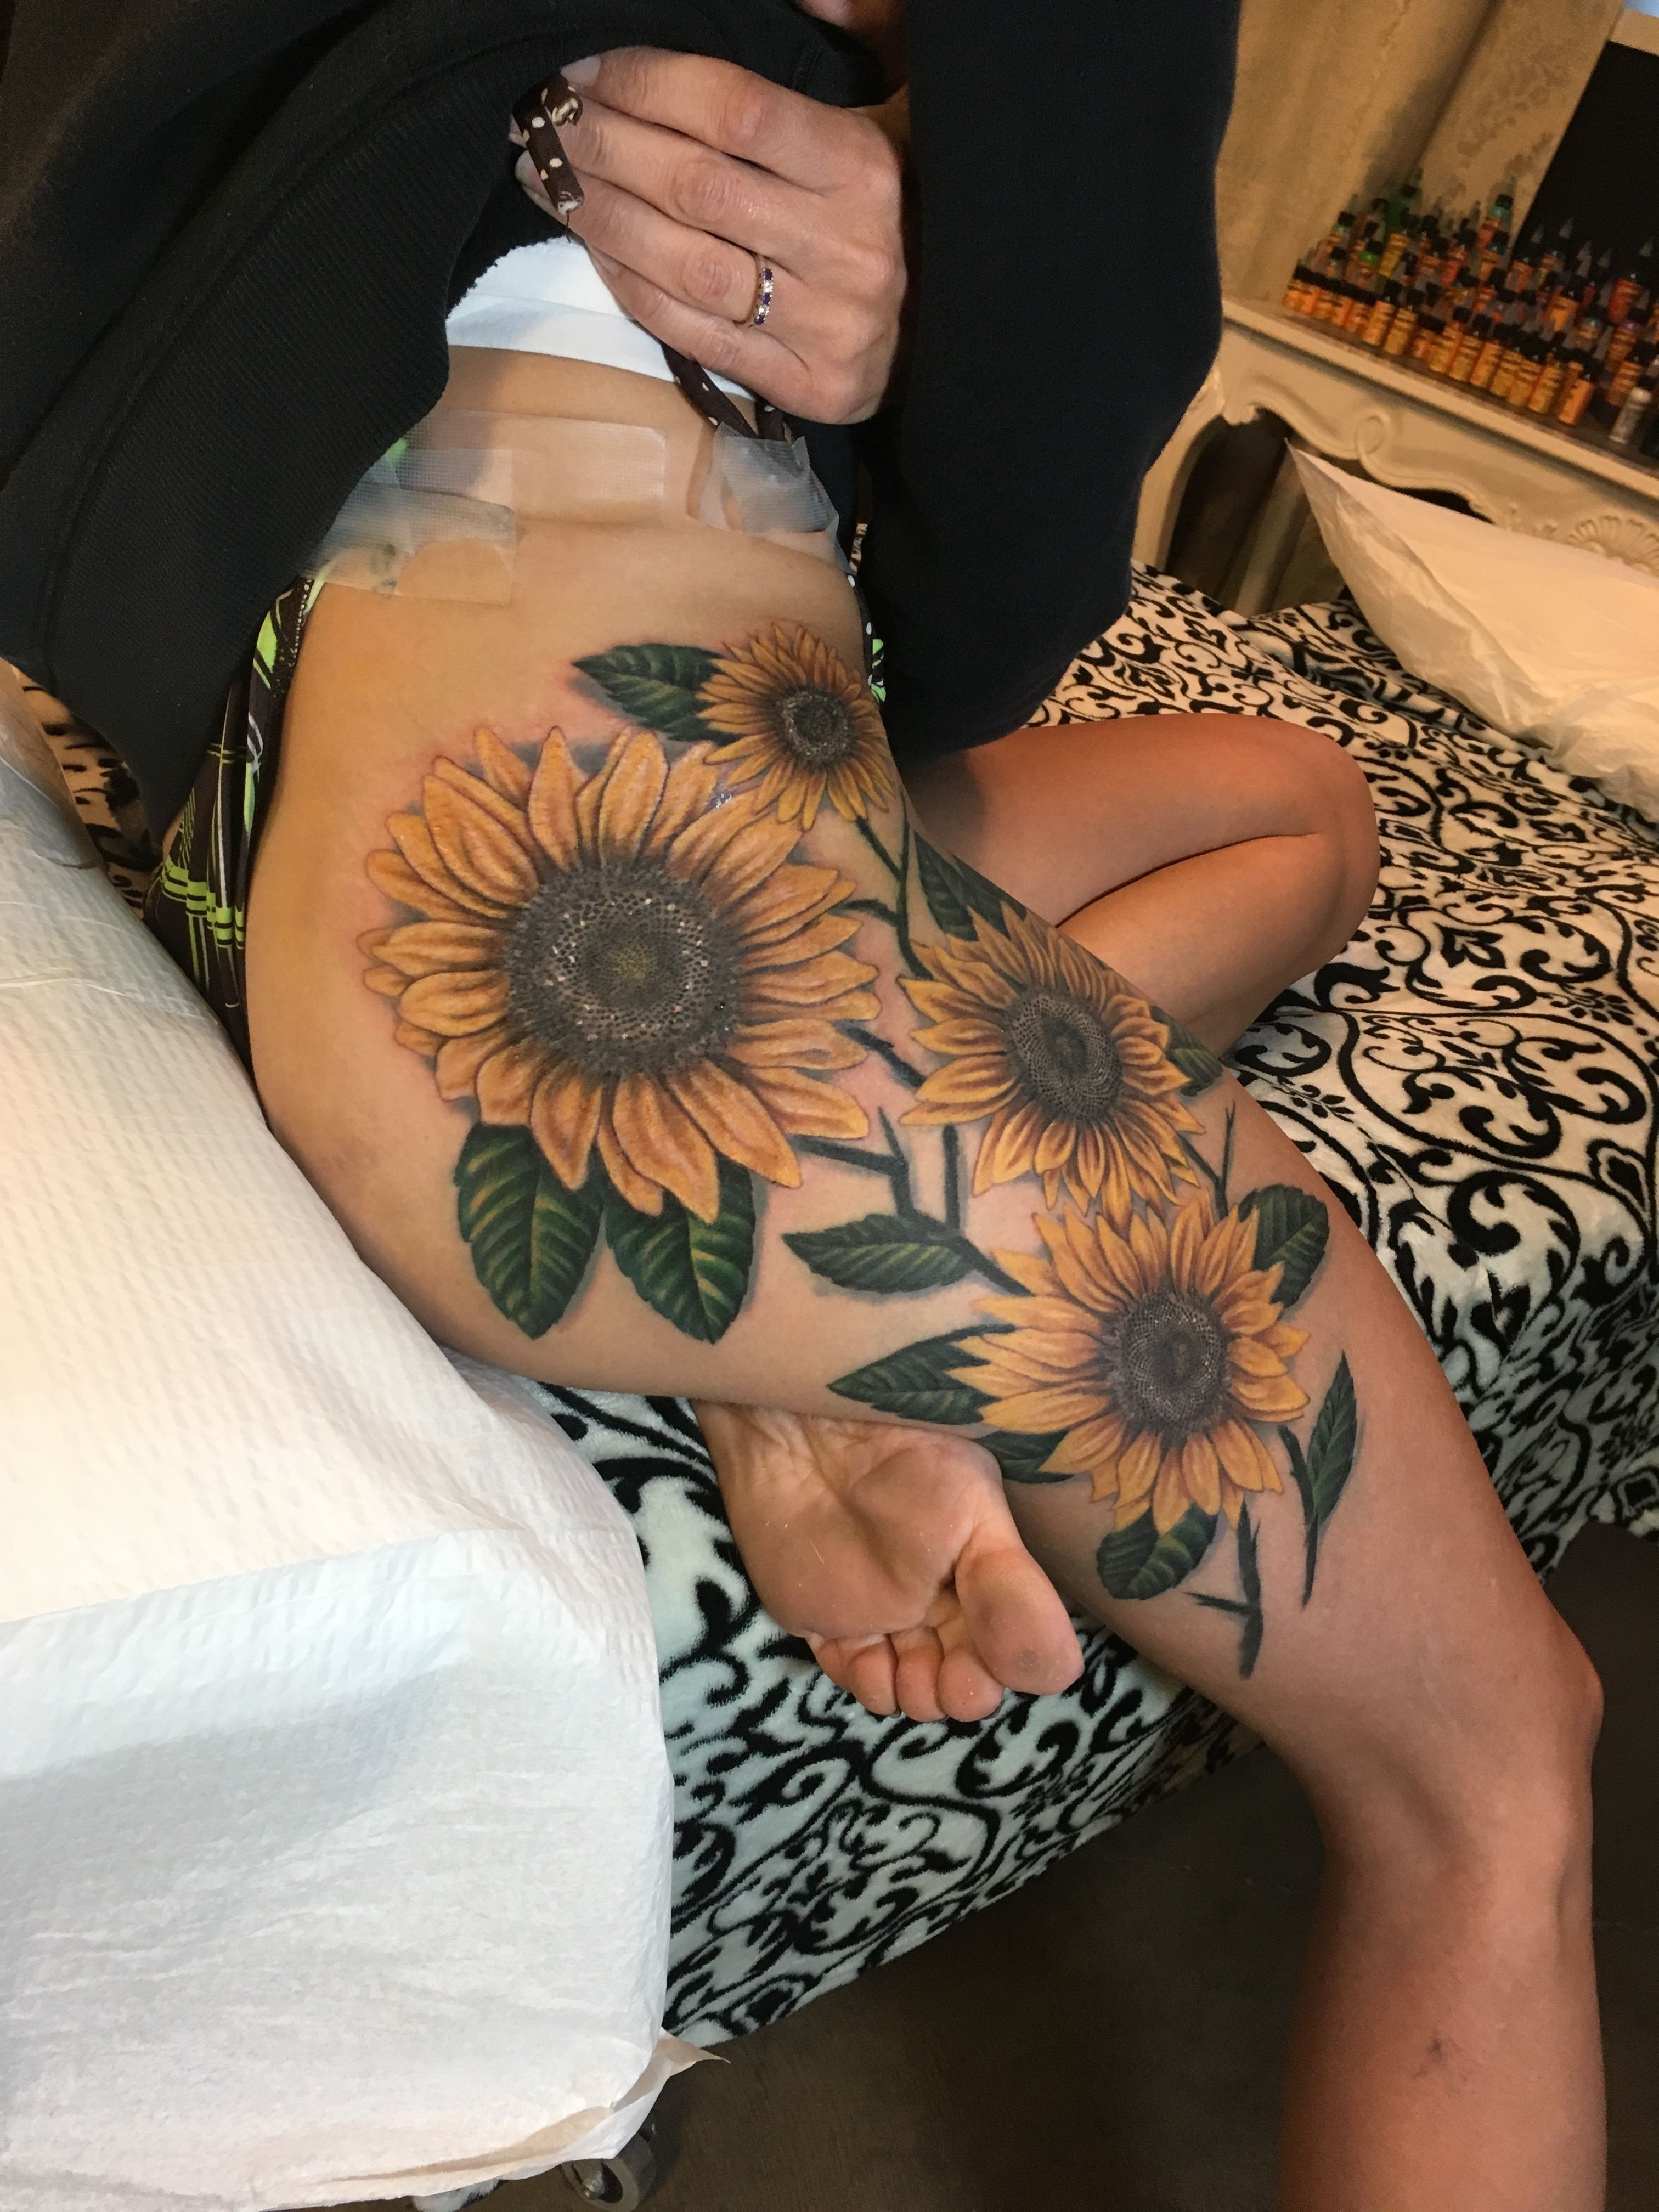 Family birth month flowers all to her Cool idea ❤ Tattoos & Piercings ❤ Pinterest